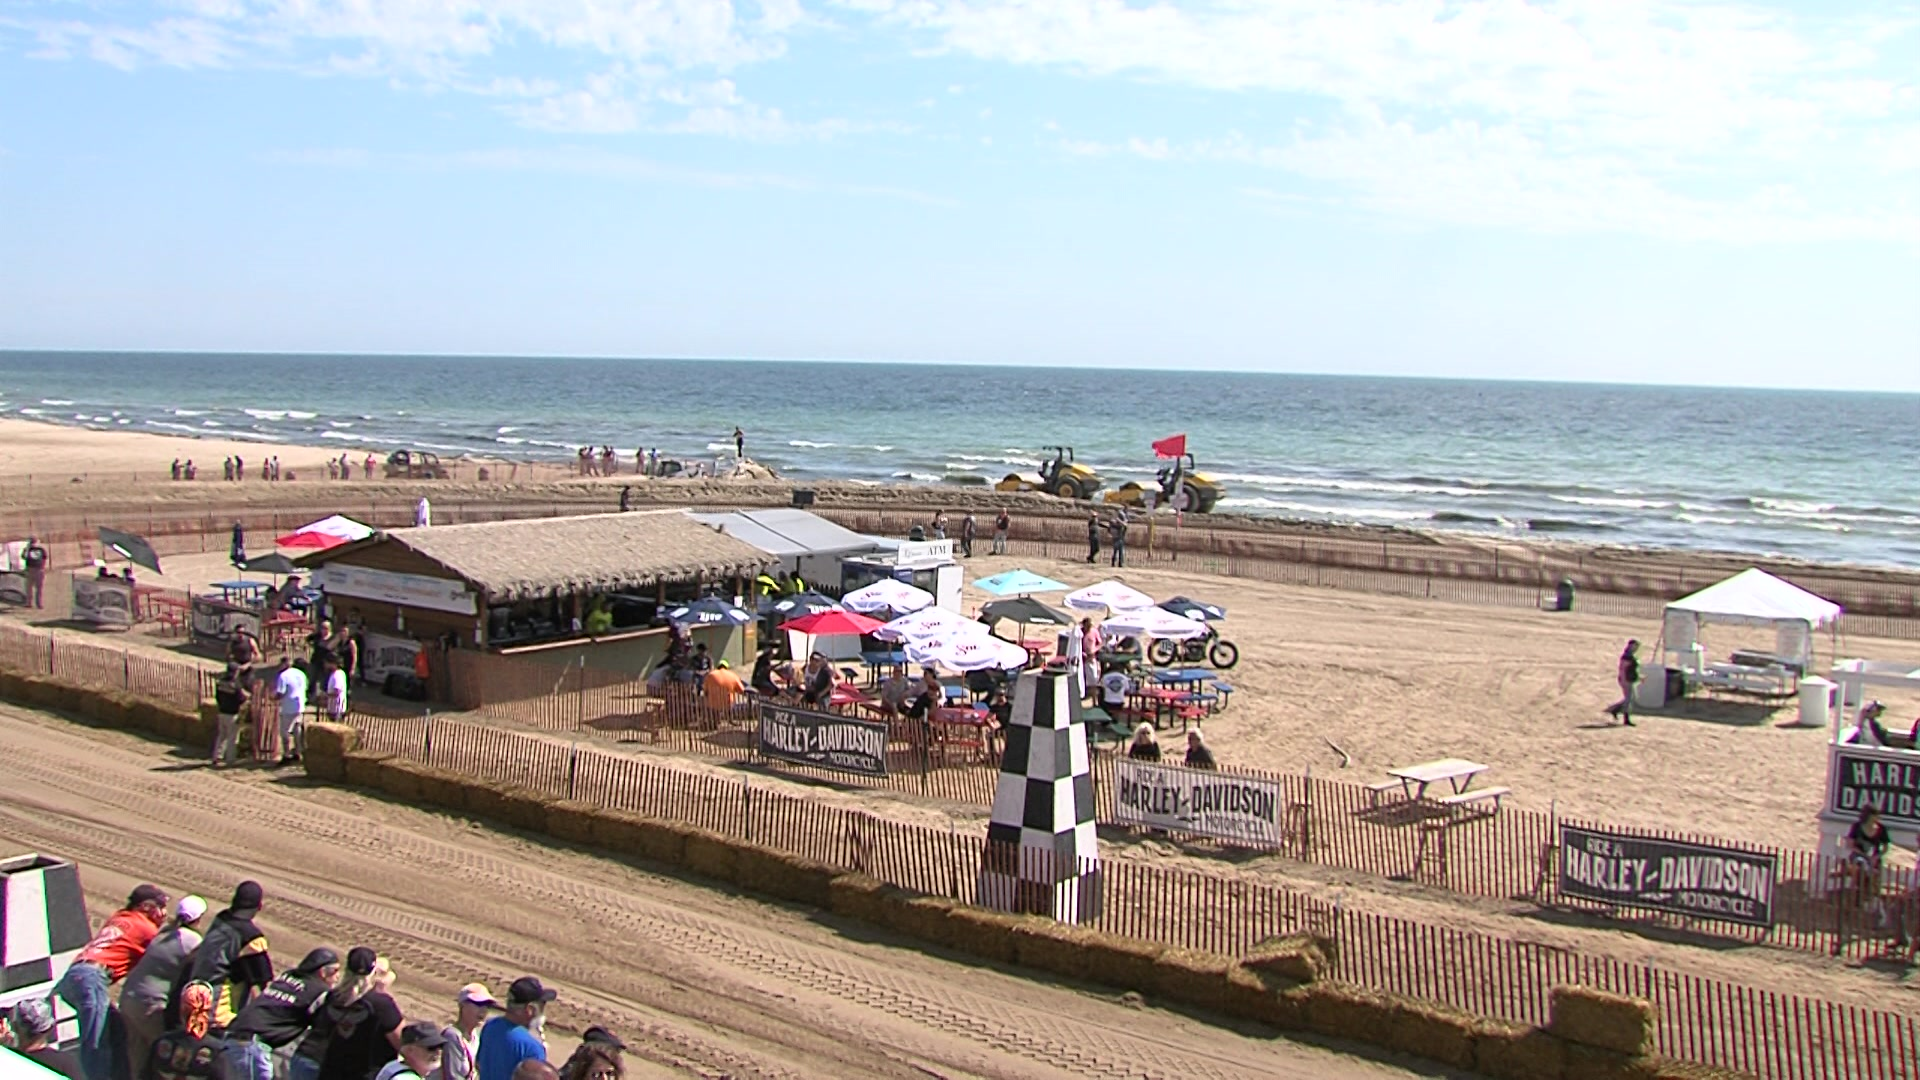 It S The First Time In 100 Years That People Could Come Out And See Motorcycle Sand Racing Along Lake Michigan Sline Riders On Vintage New Bikes